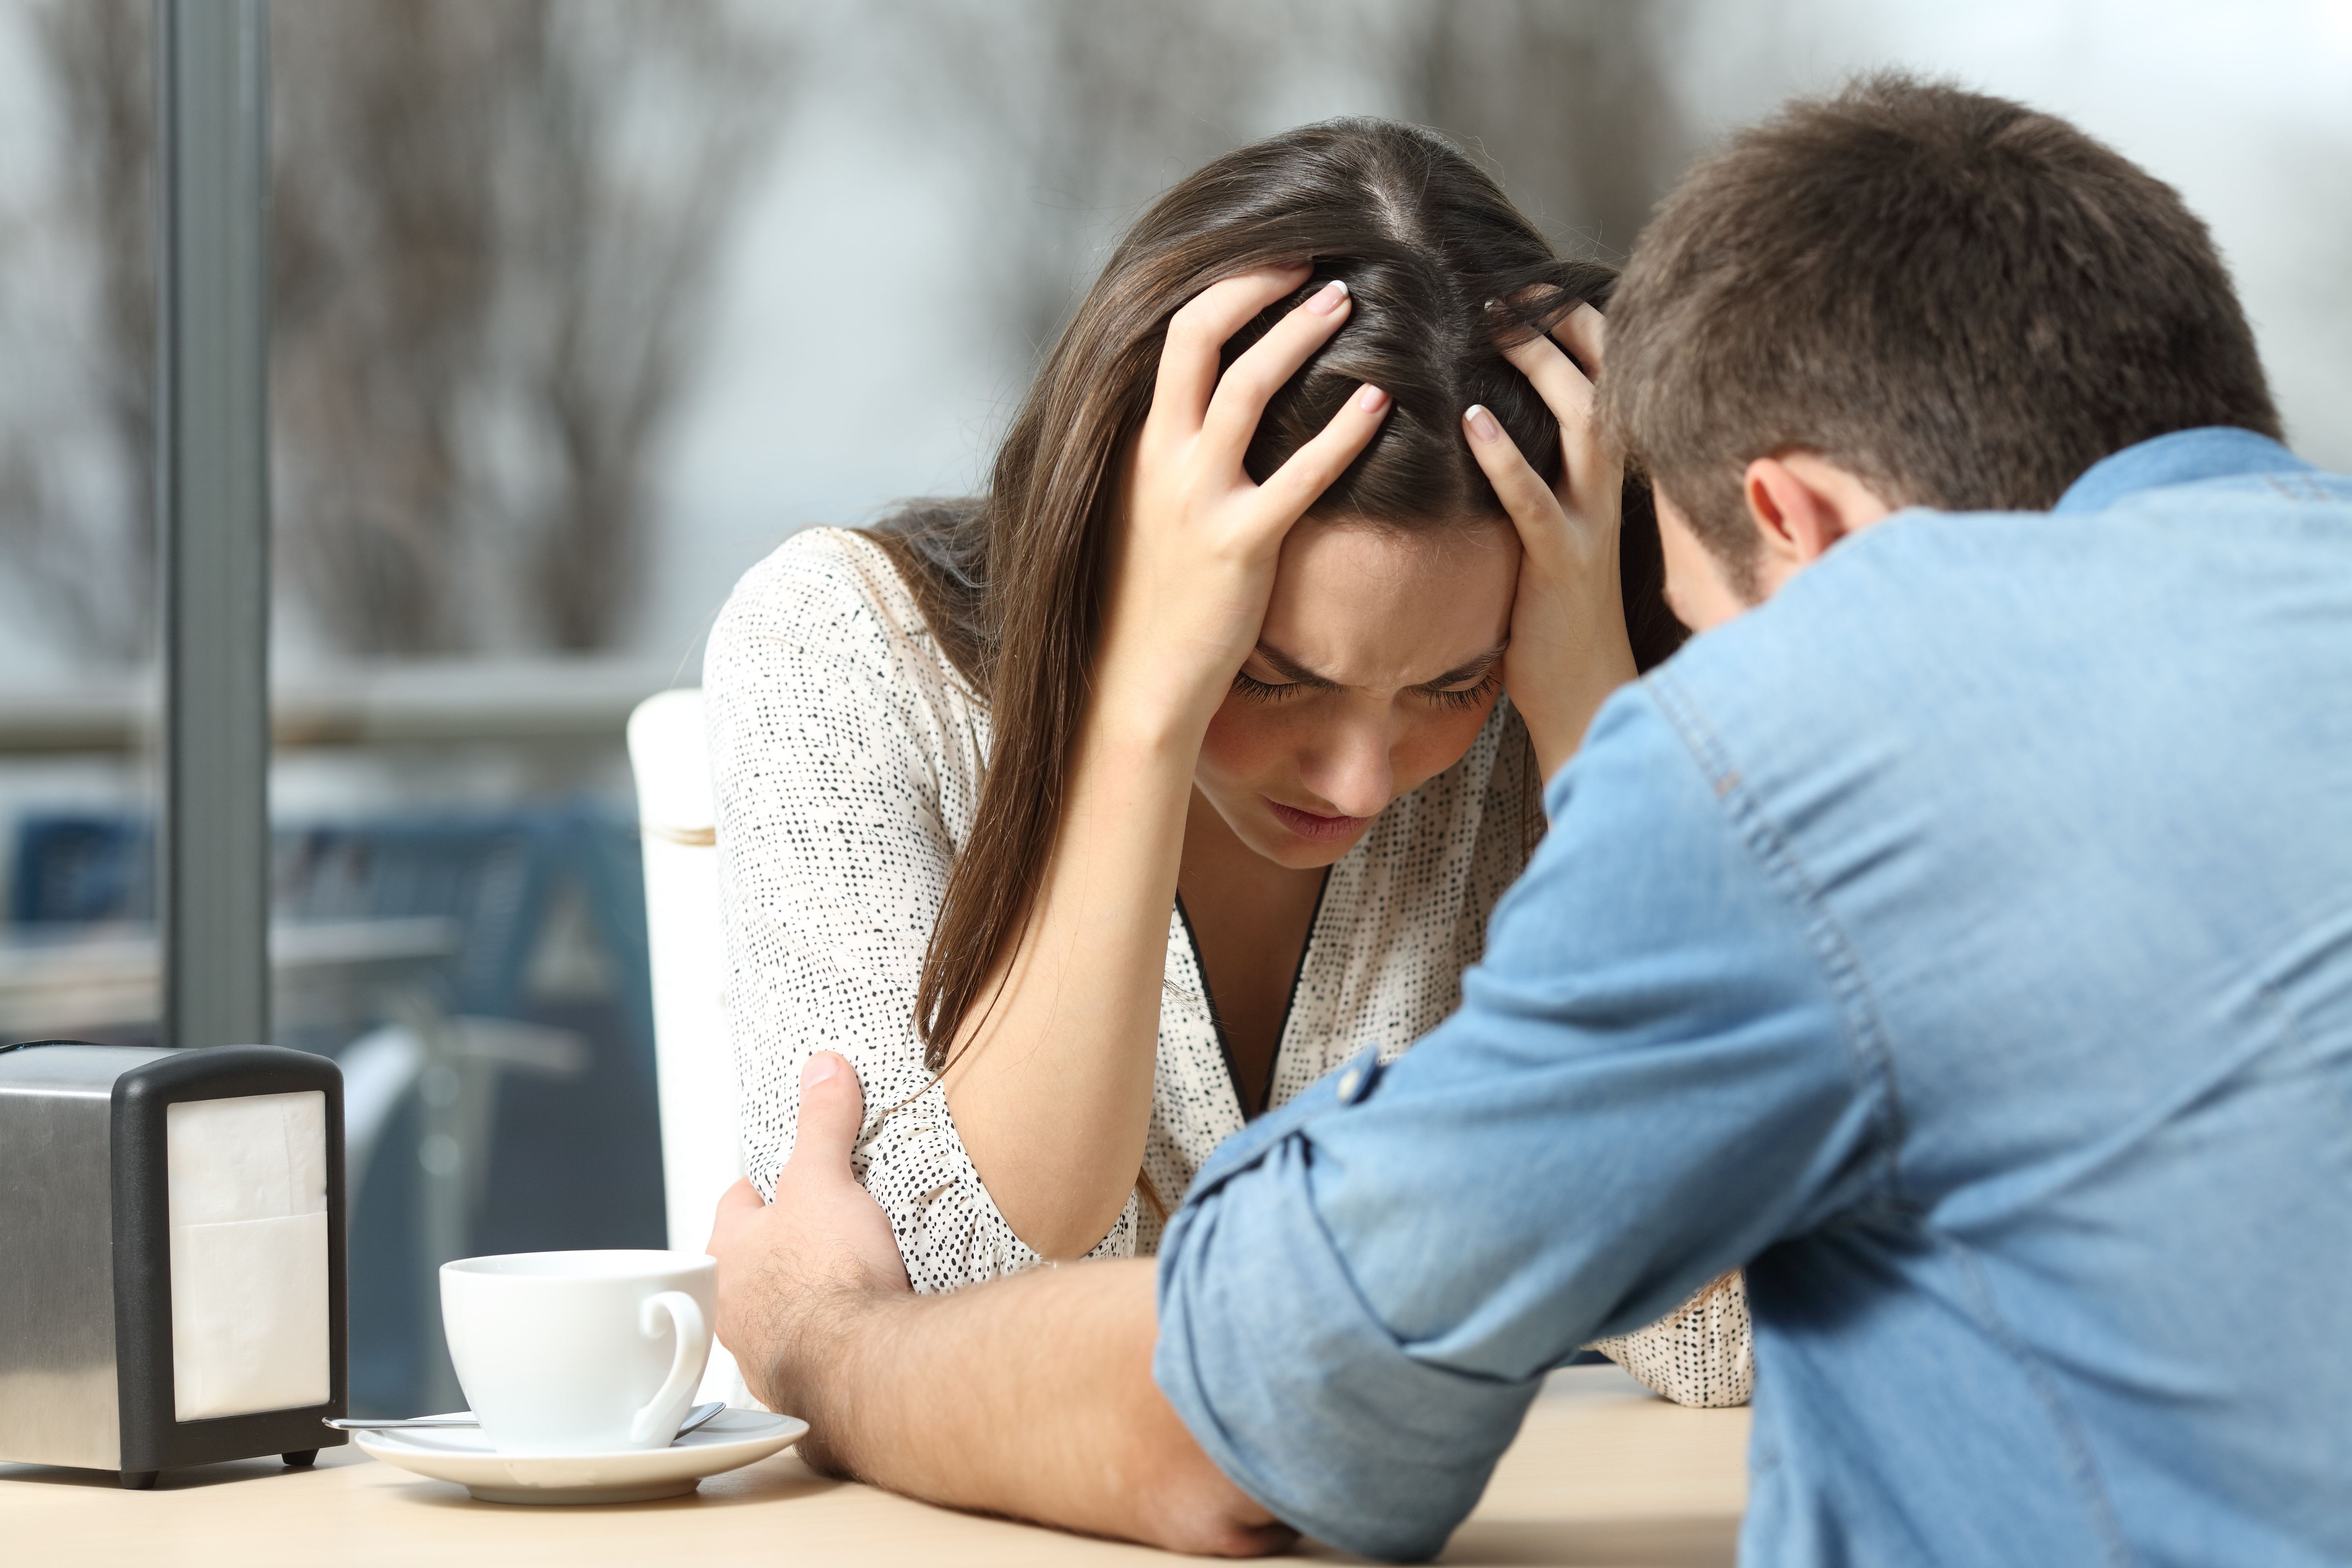 A man and a woman look upset while talking. | Source: Shutterstock